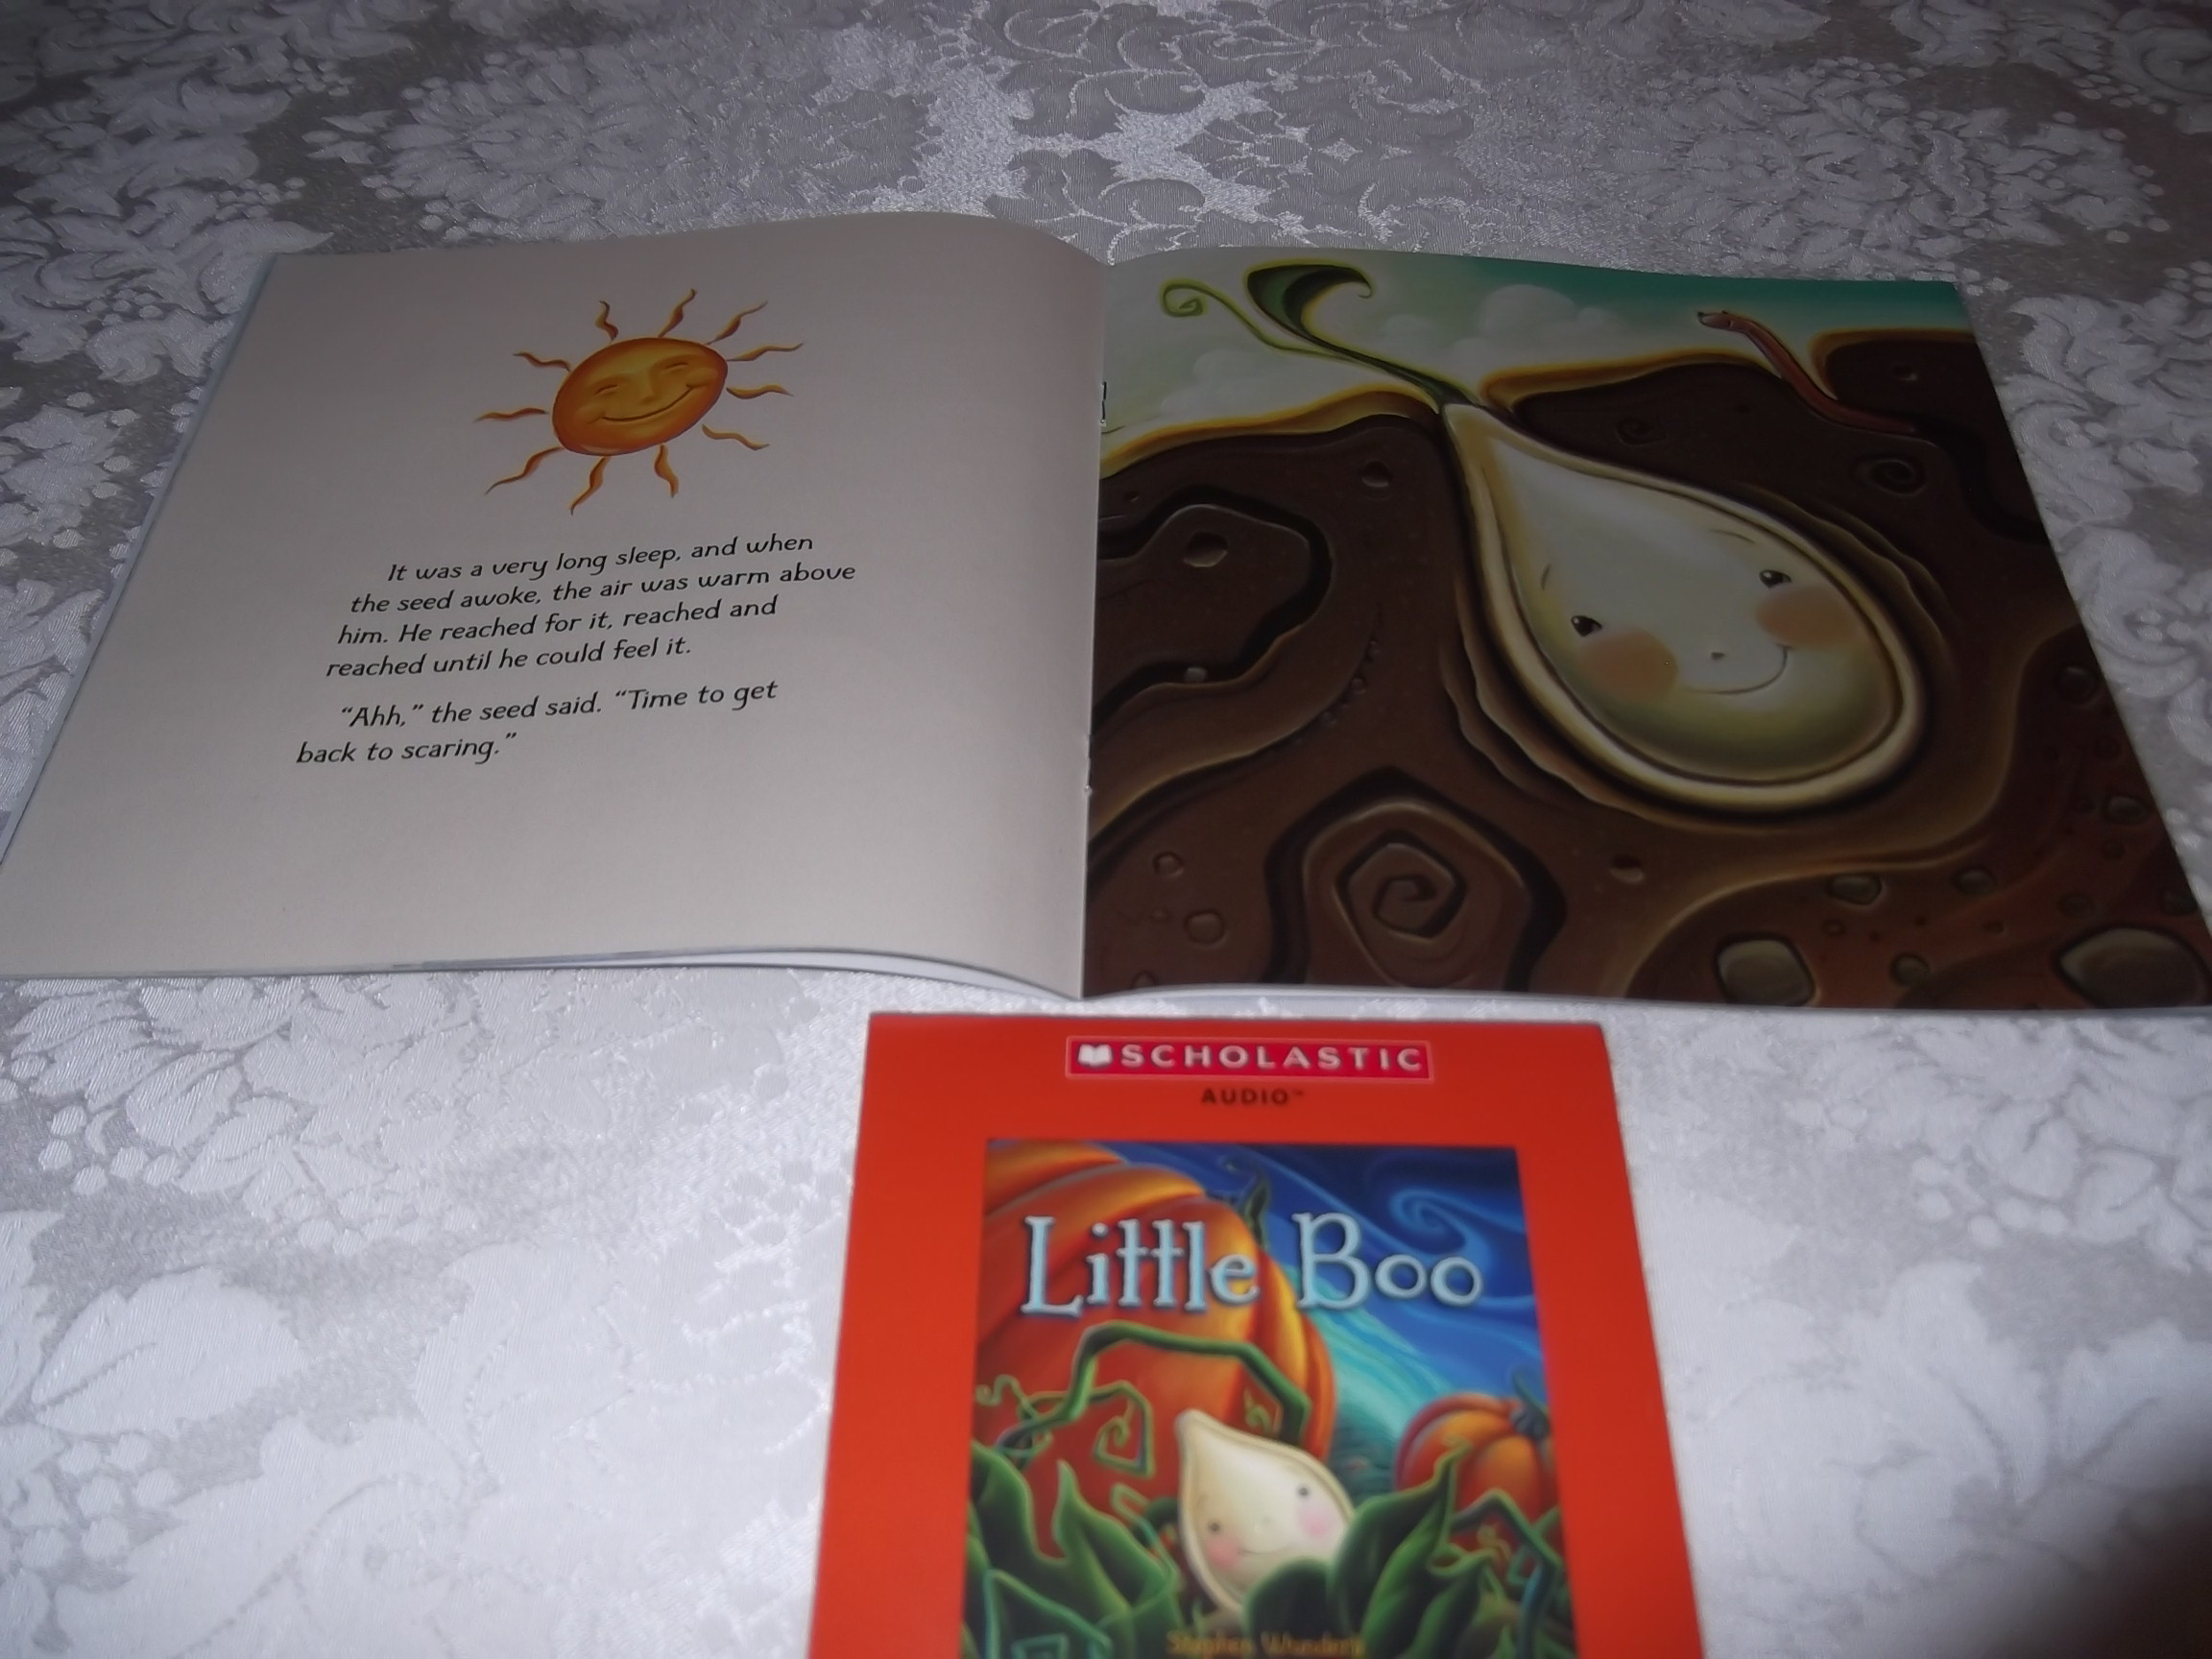 Image 1 of Little Boo Stephen Wunderli Audio CD & SC Brand New